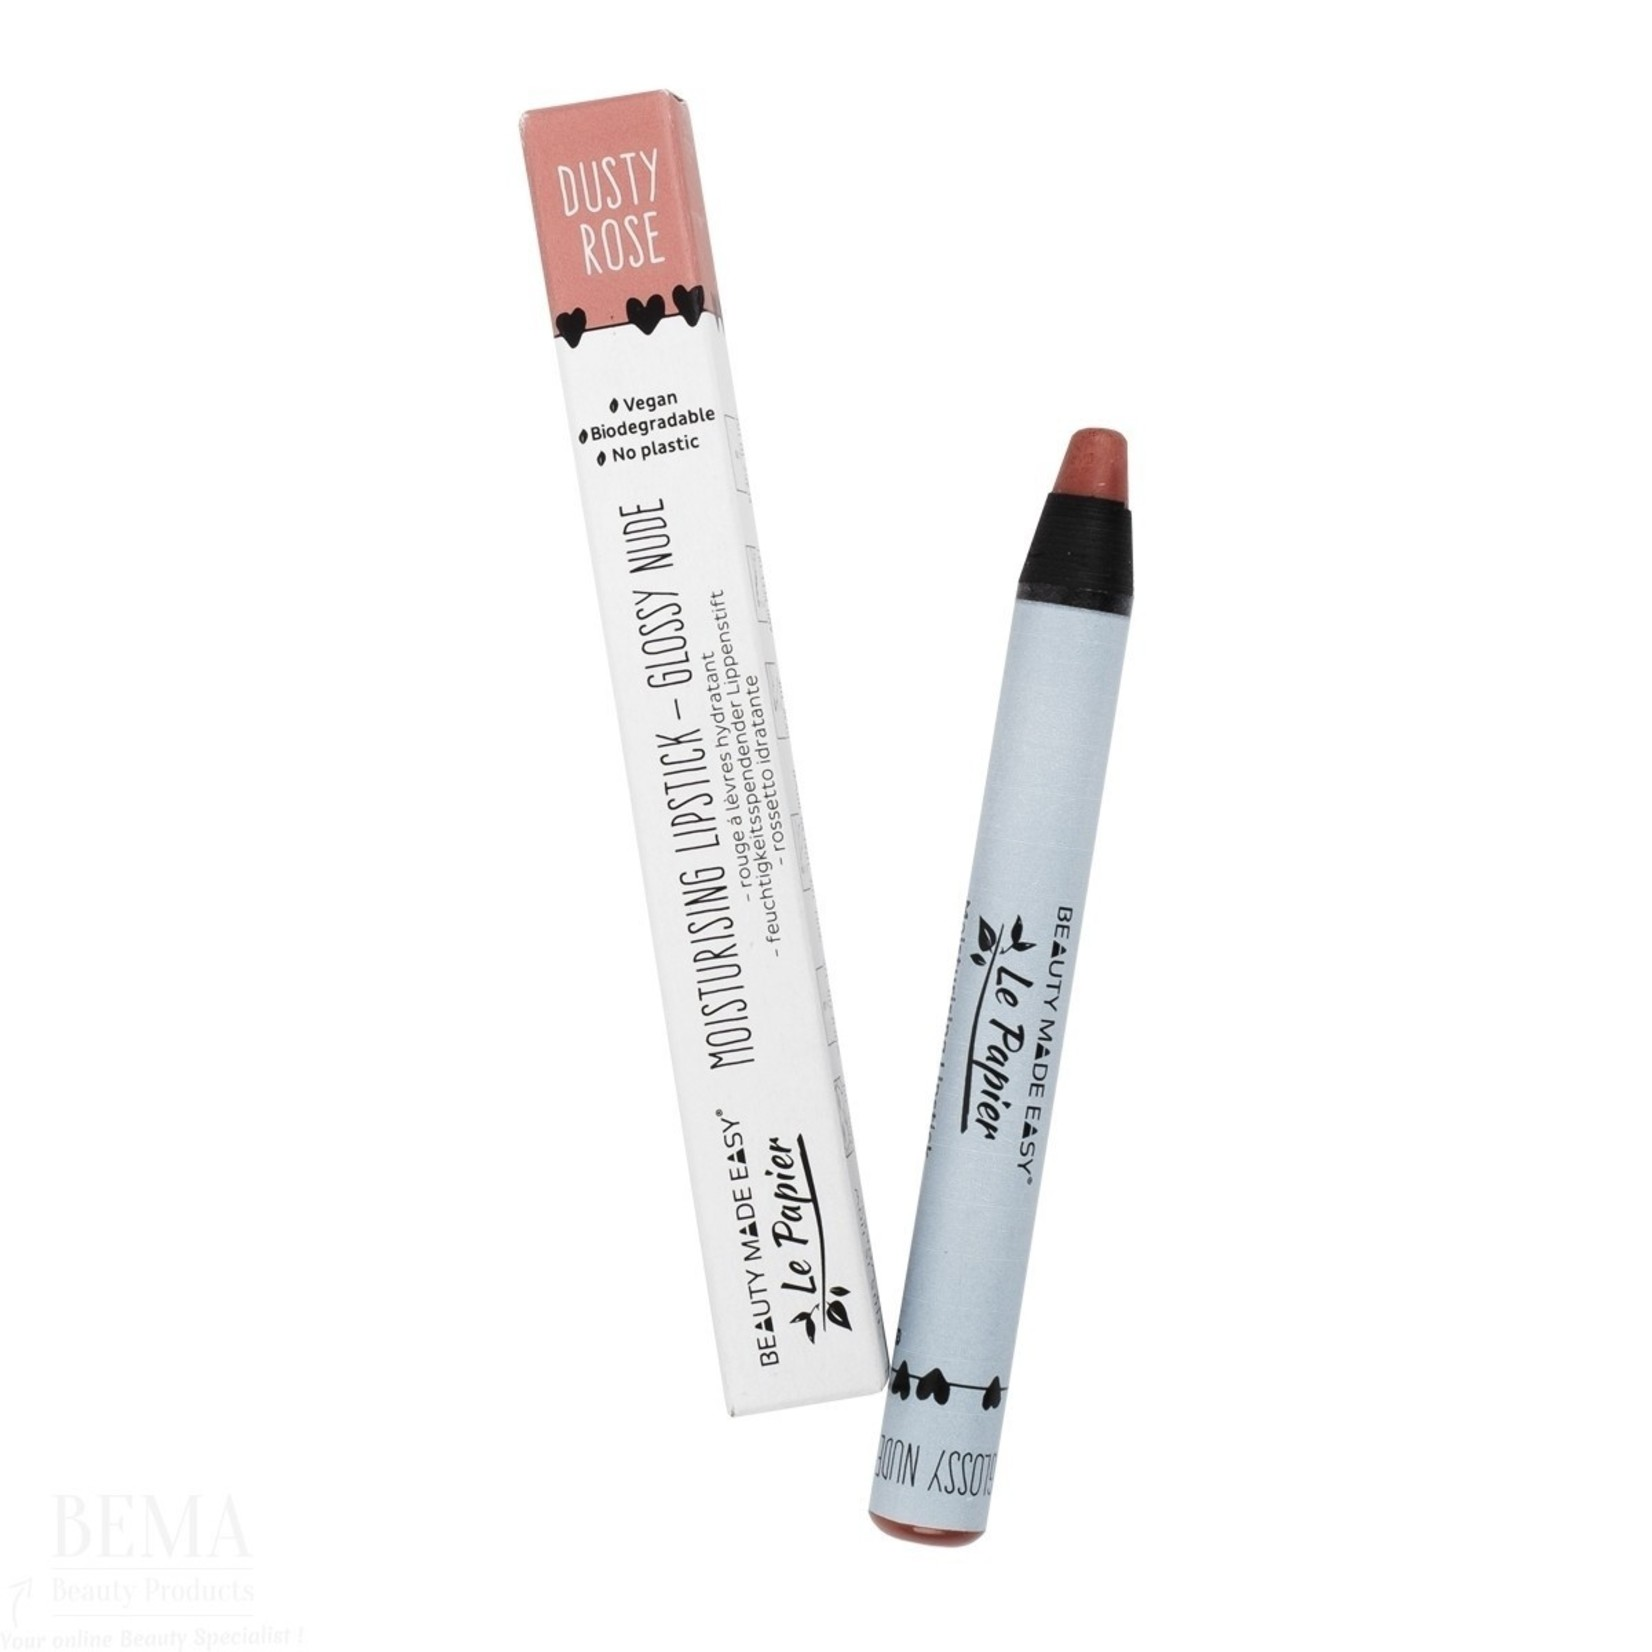 Voedende lipstick - Glossy Nudes - DUSTY ROSE - 6 g